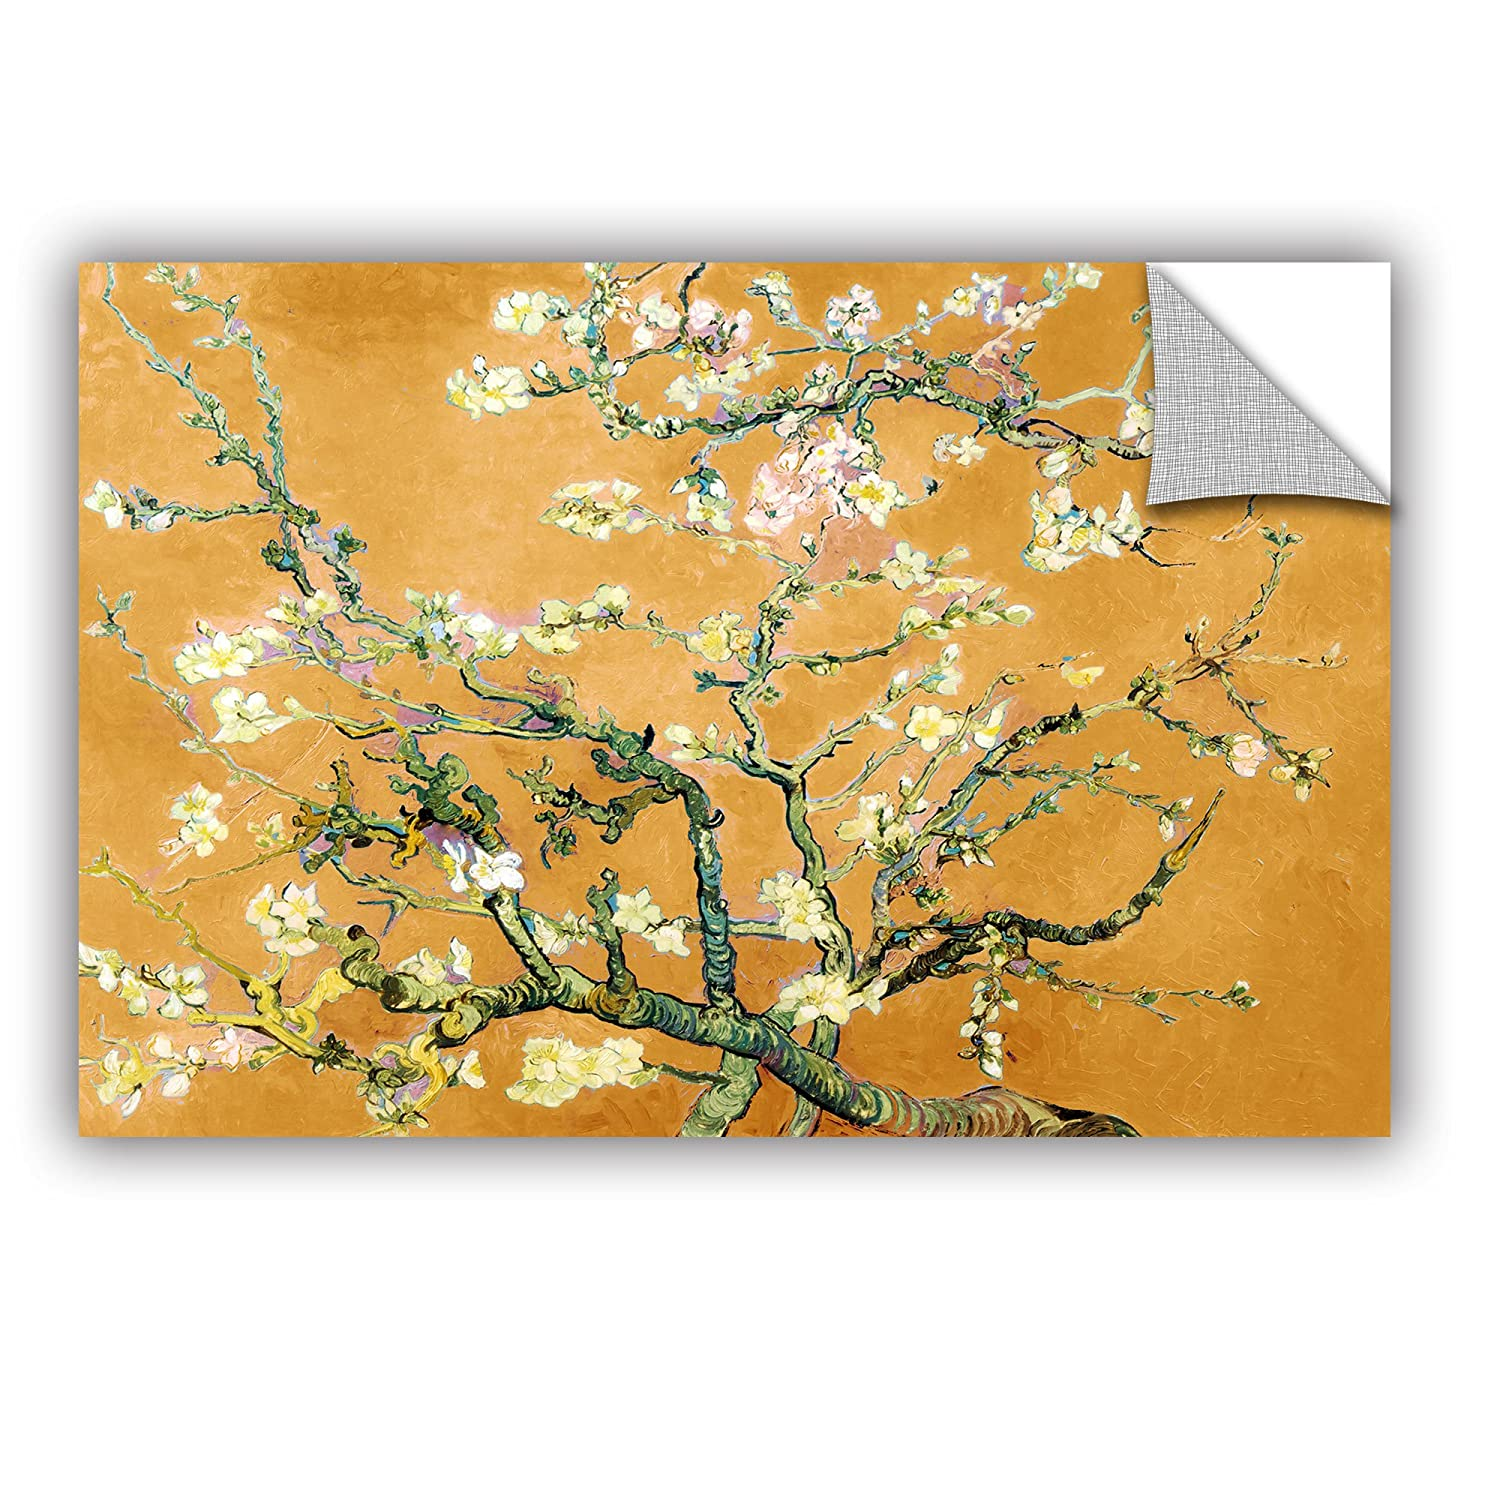 ArtWall Vincent Vangoghs Almond Blossom Interpretation in Merigold Orange Art Appealz Removable Graphic Wall Art 16 by 24-Inch